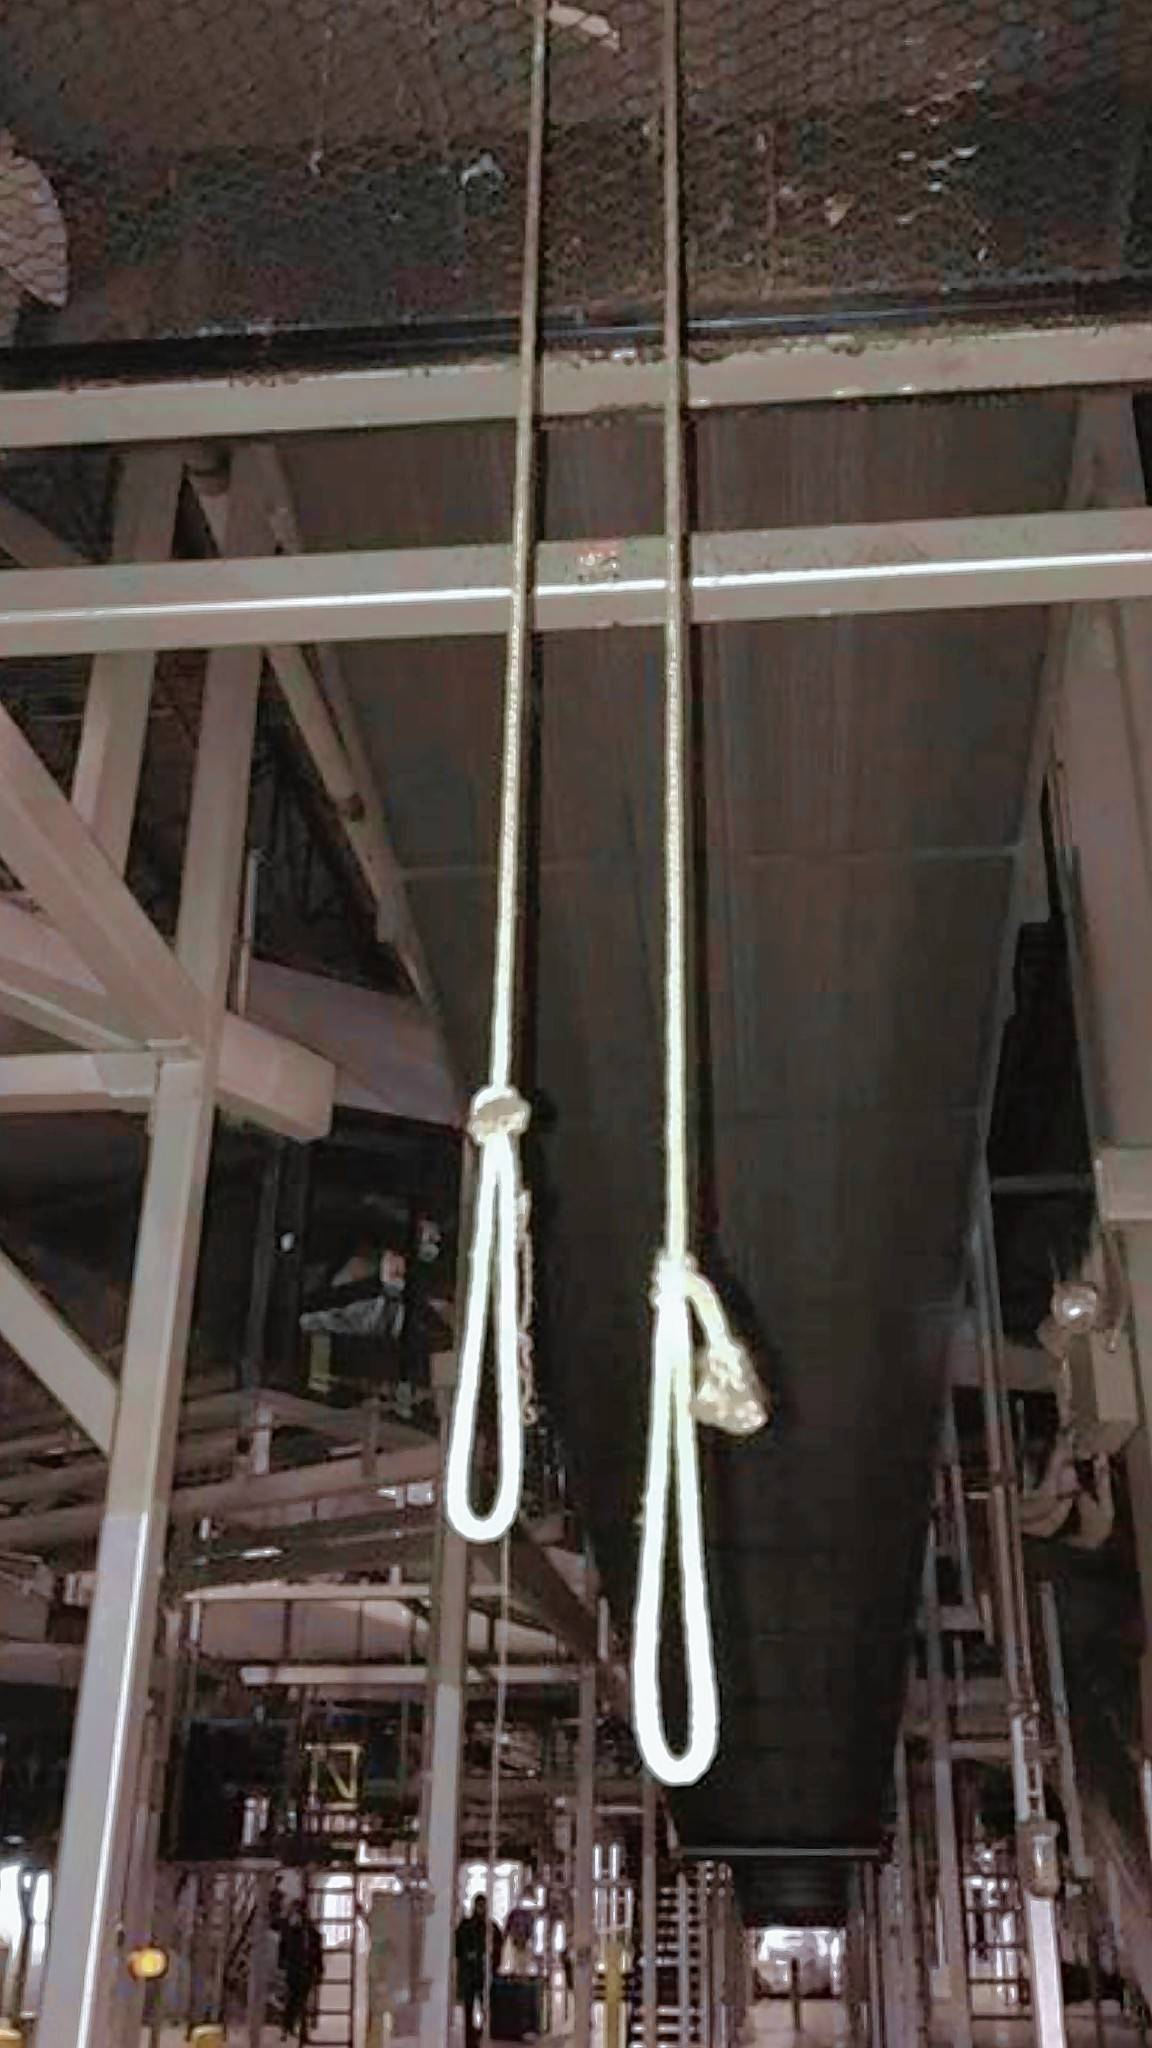 Rashaun Granberry says he viewed these ropes he saw dangling at United Parcel Service in Palatine as nooses sending a racist message. UPS says the ropes were temporarily used in place of chains that were being repaired to pull the cover off of a piece of equipment.